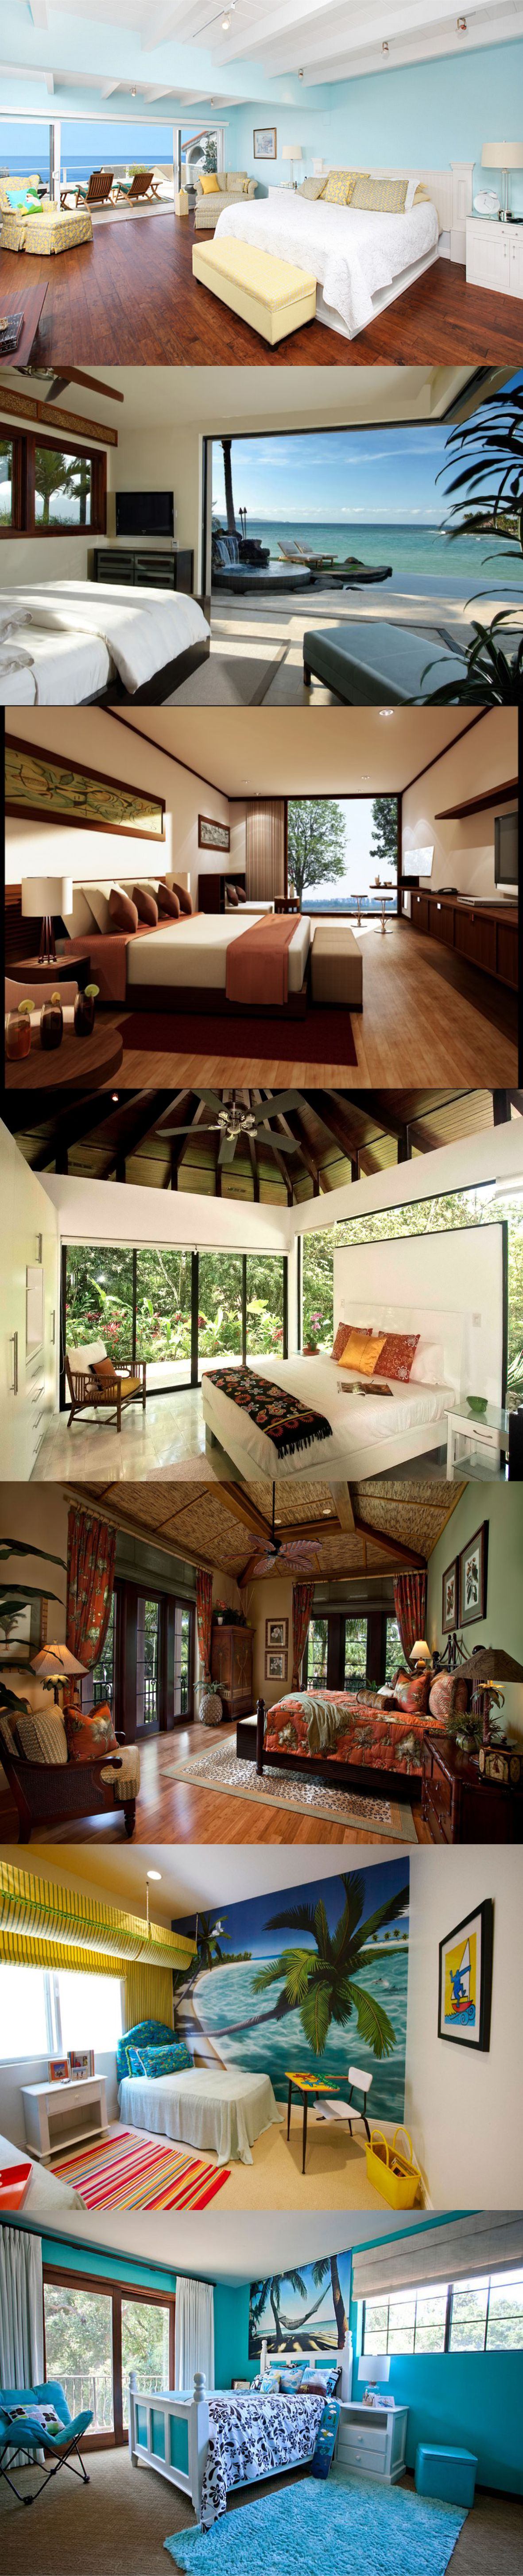 All New Tropical bedroom designs